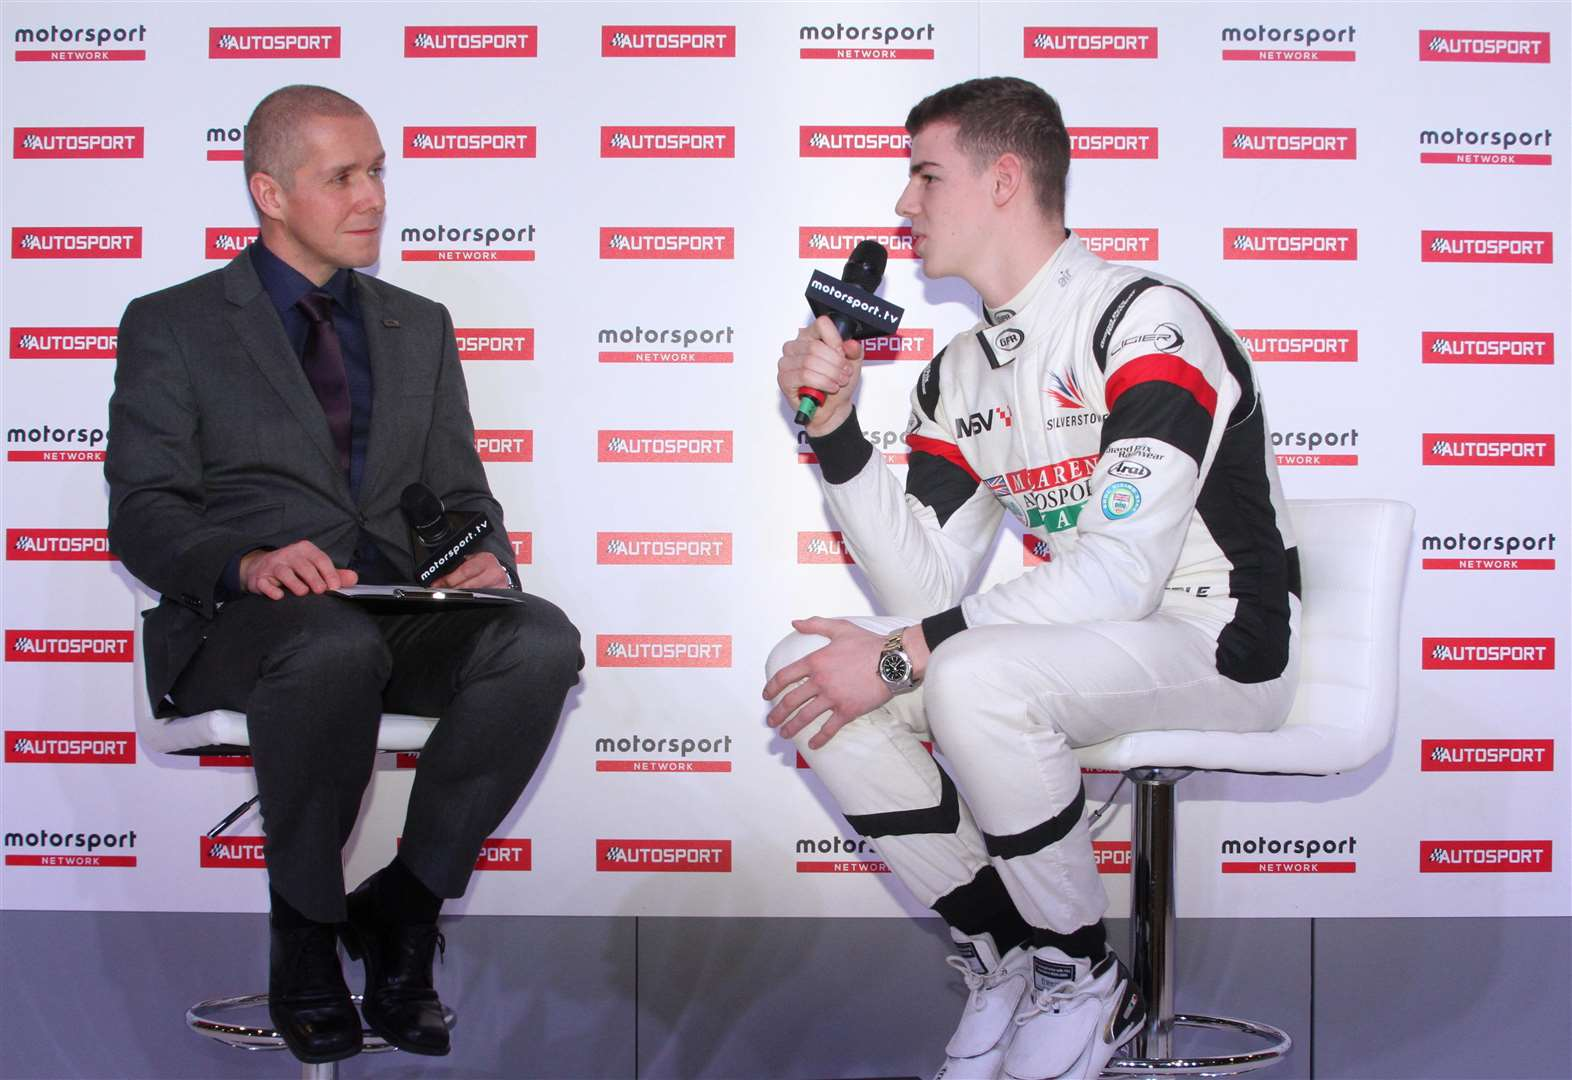 Gamble reflects on racing award